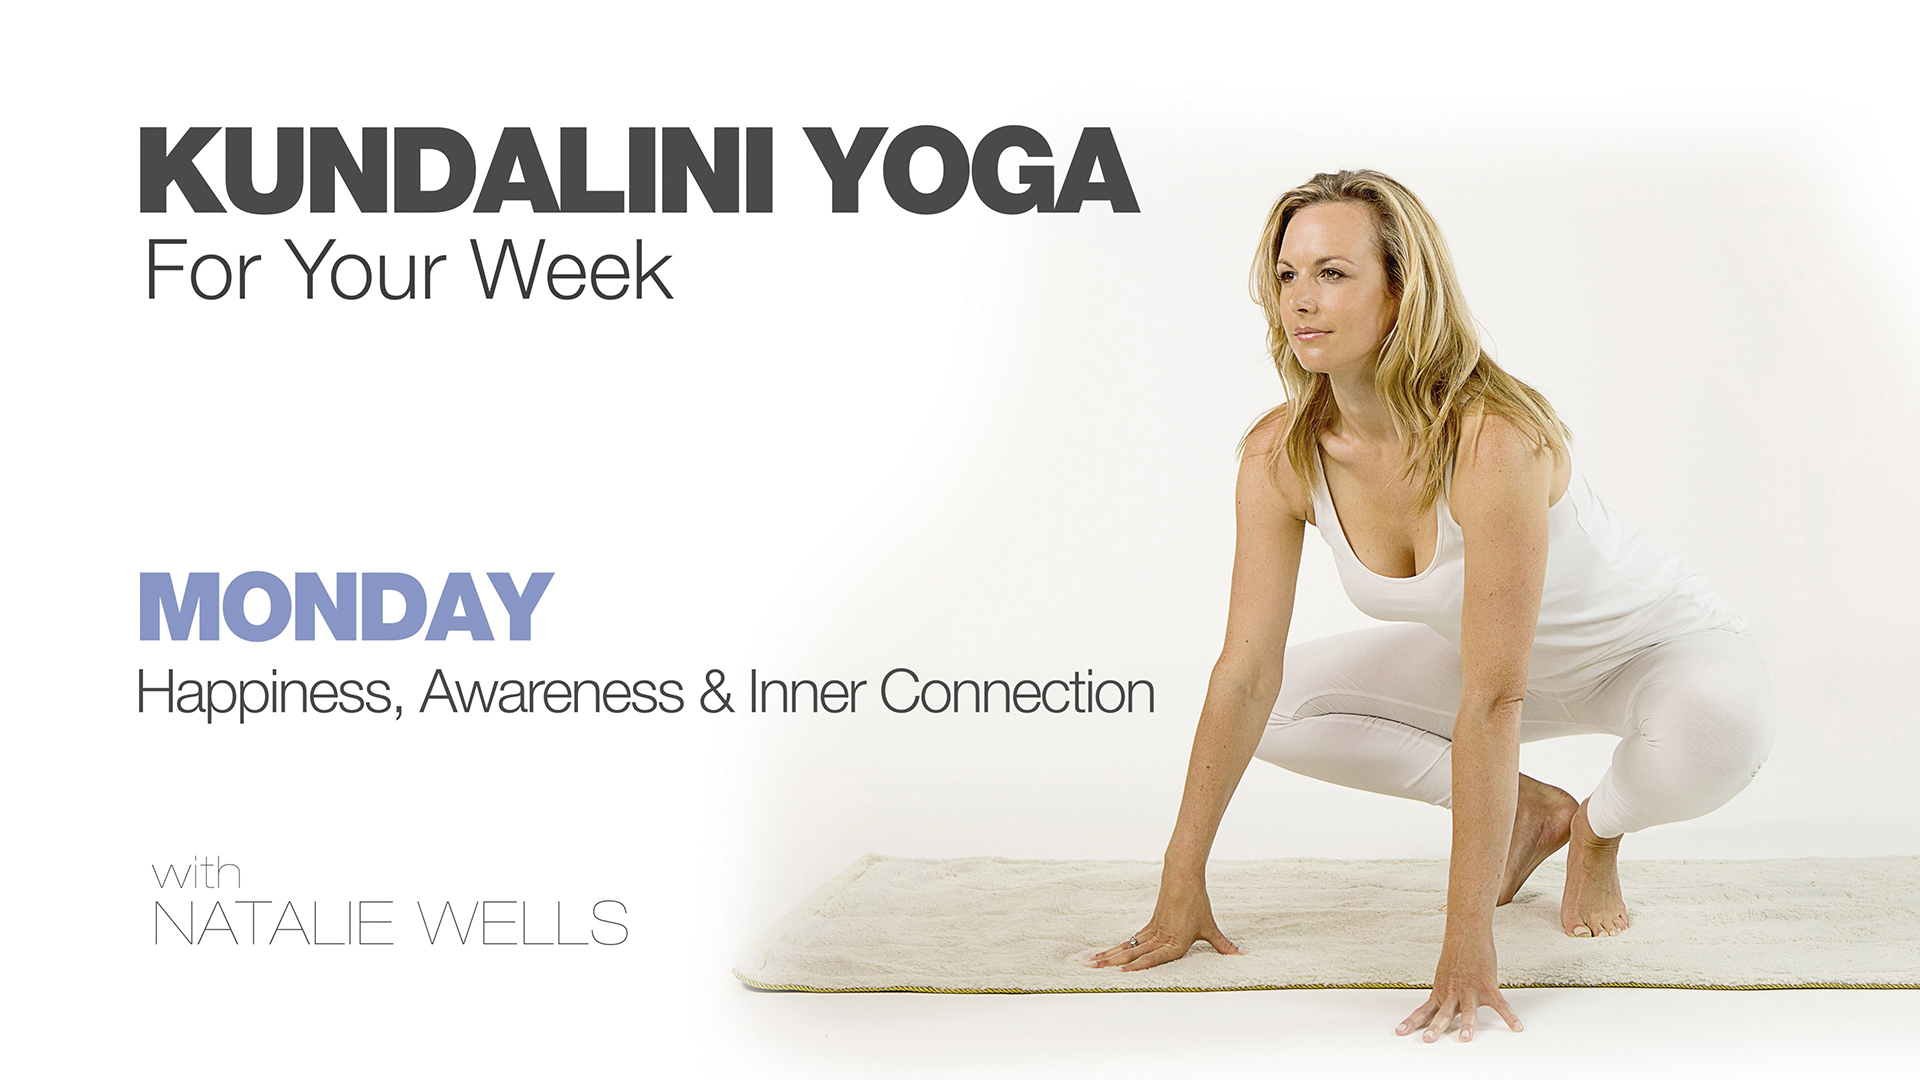 Kundalini Yoga for Your Week - Monday